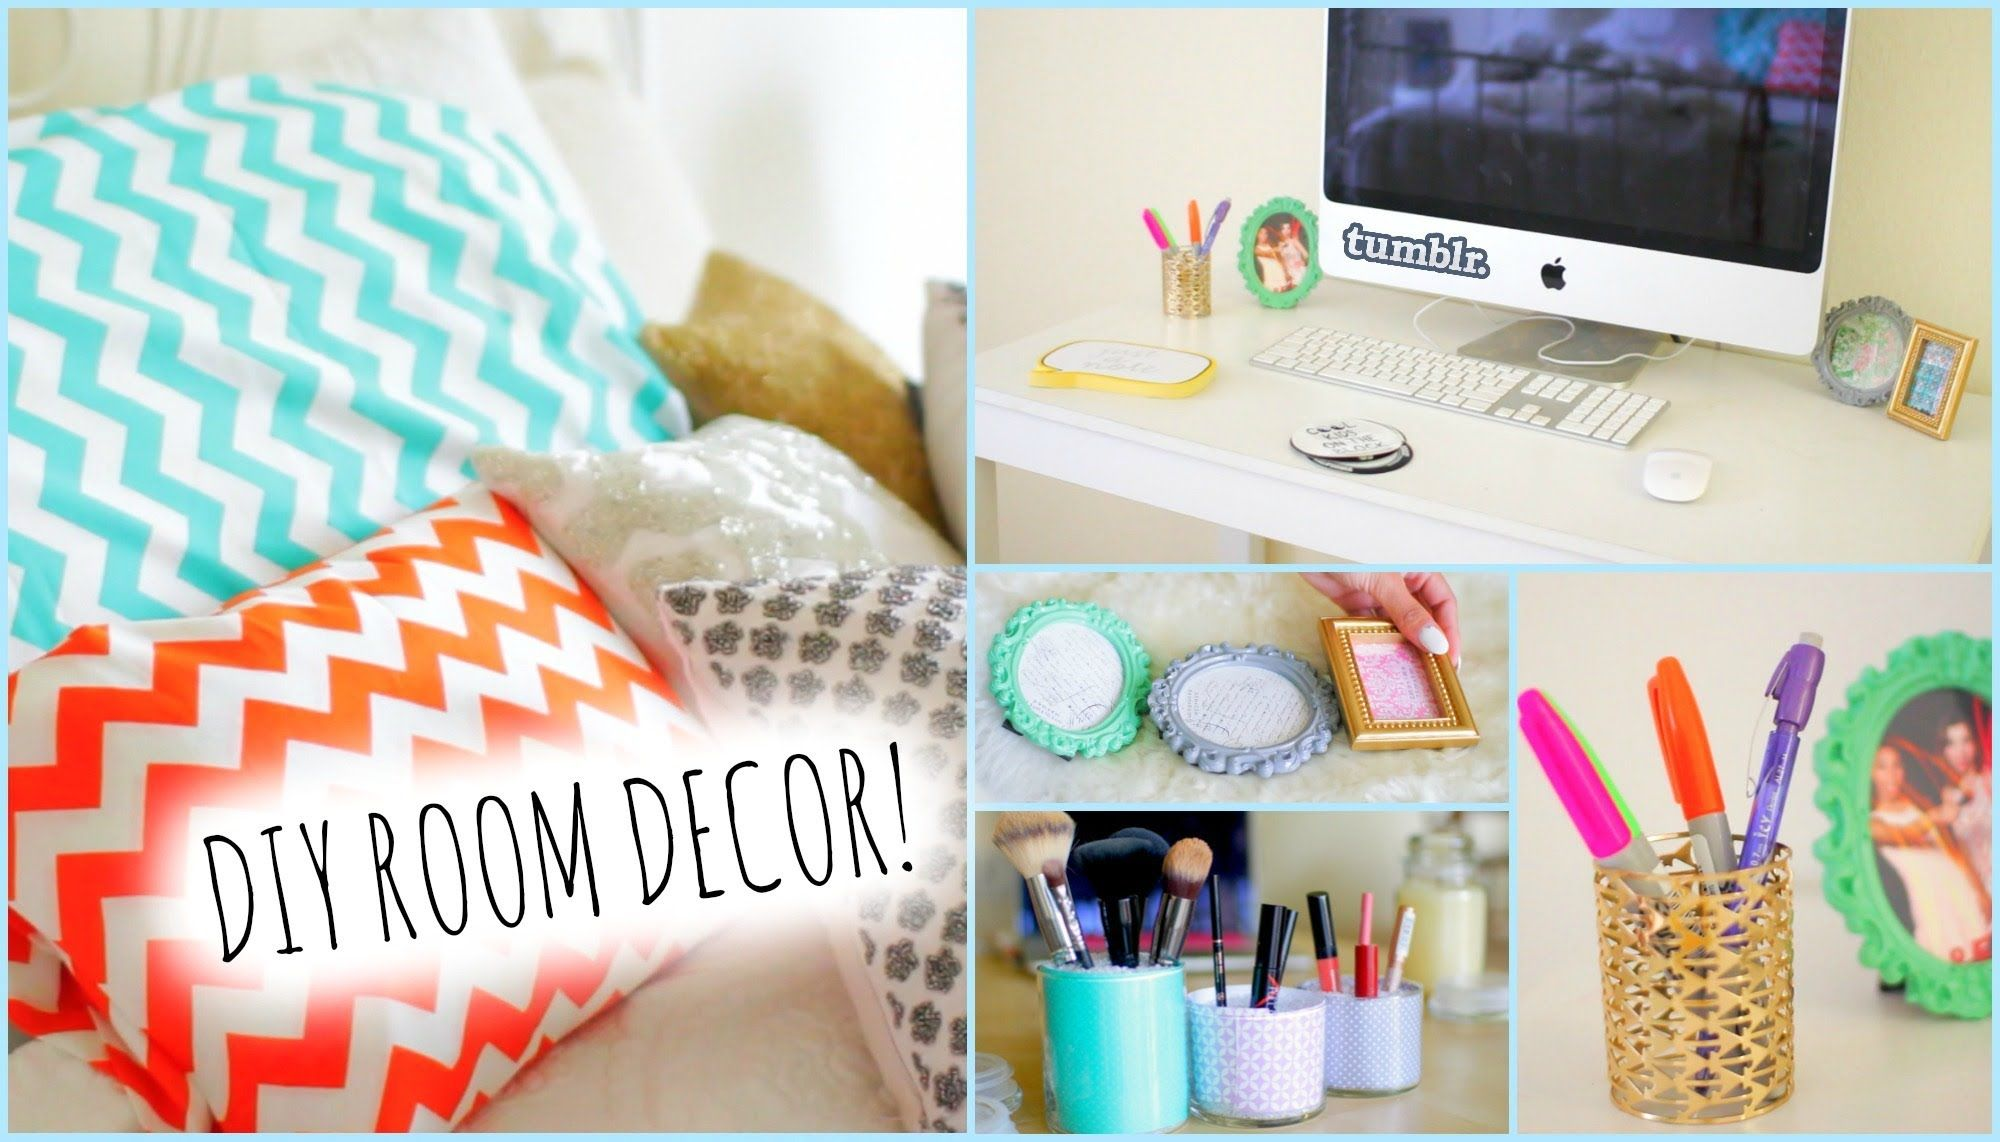 DIY Room Decorations For Cheap! How To Stay Organized ☻ DIY